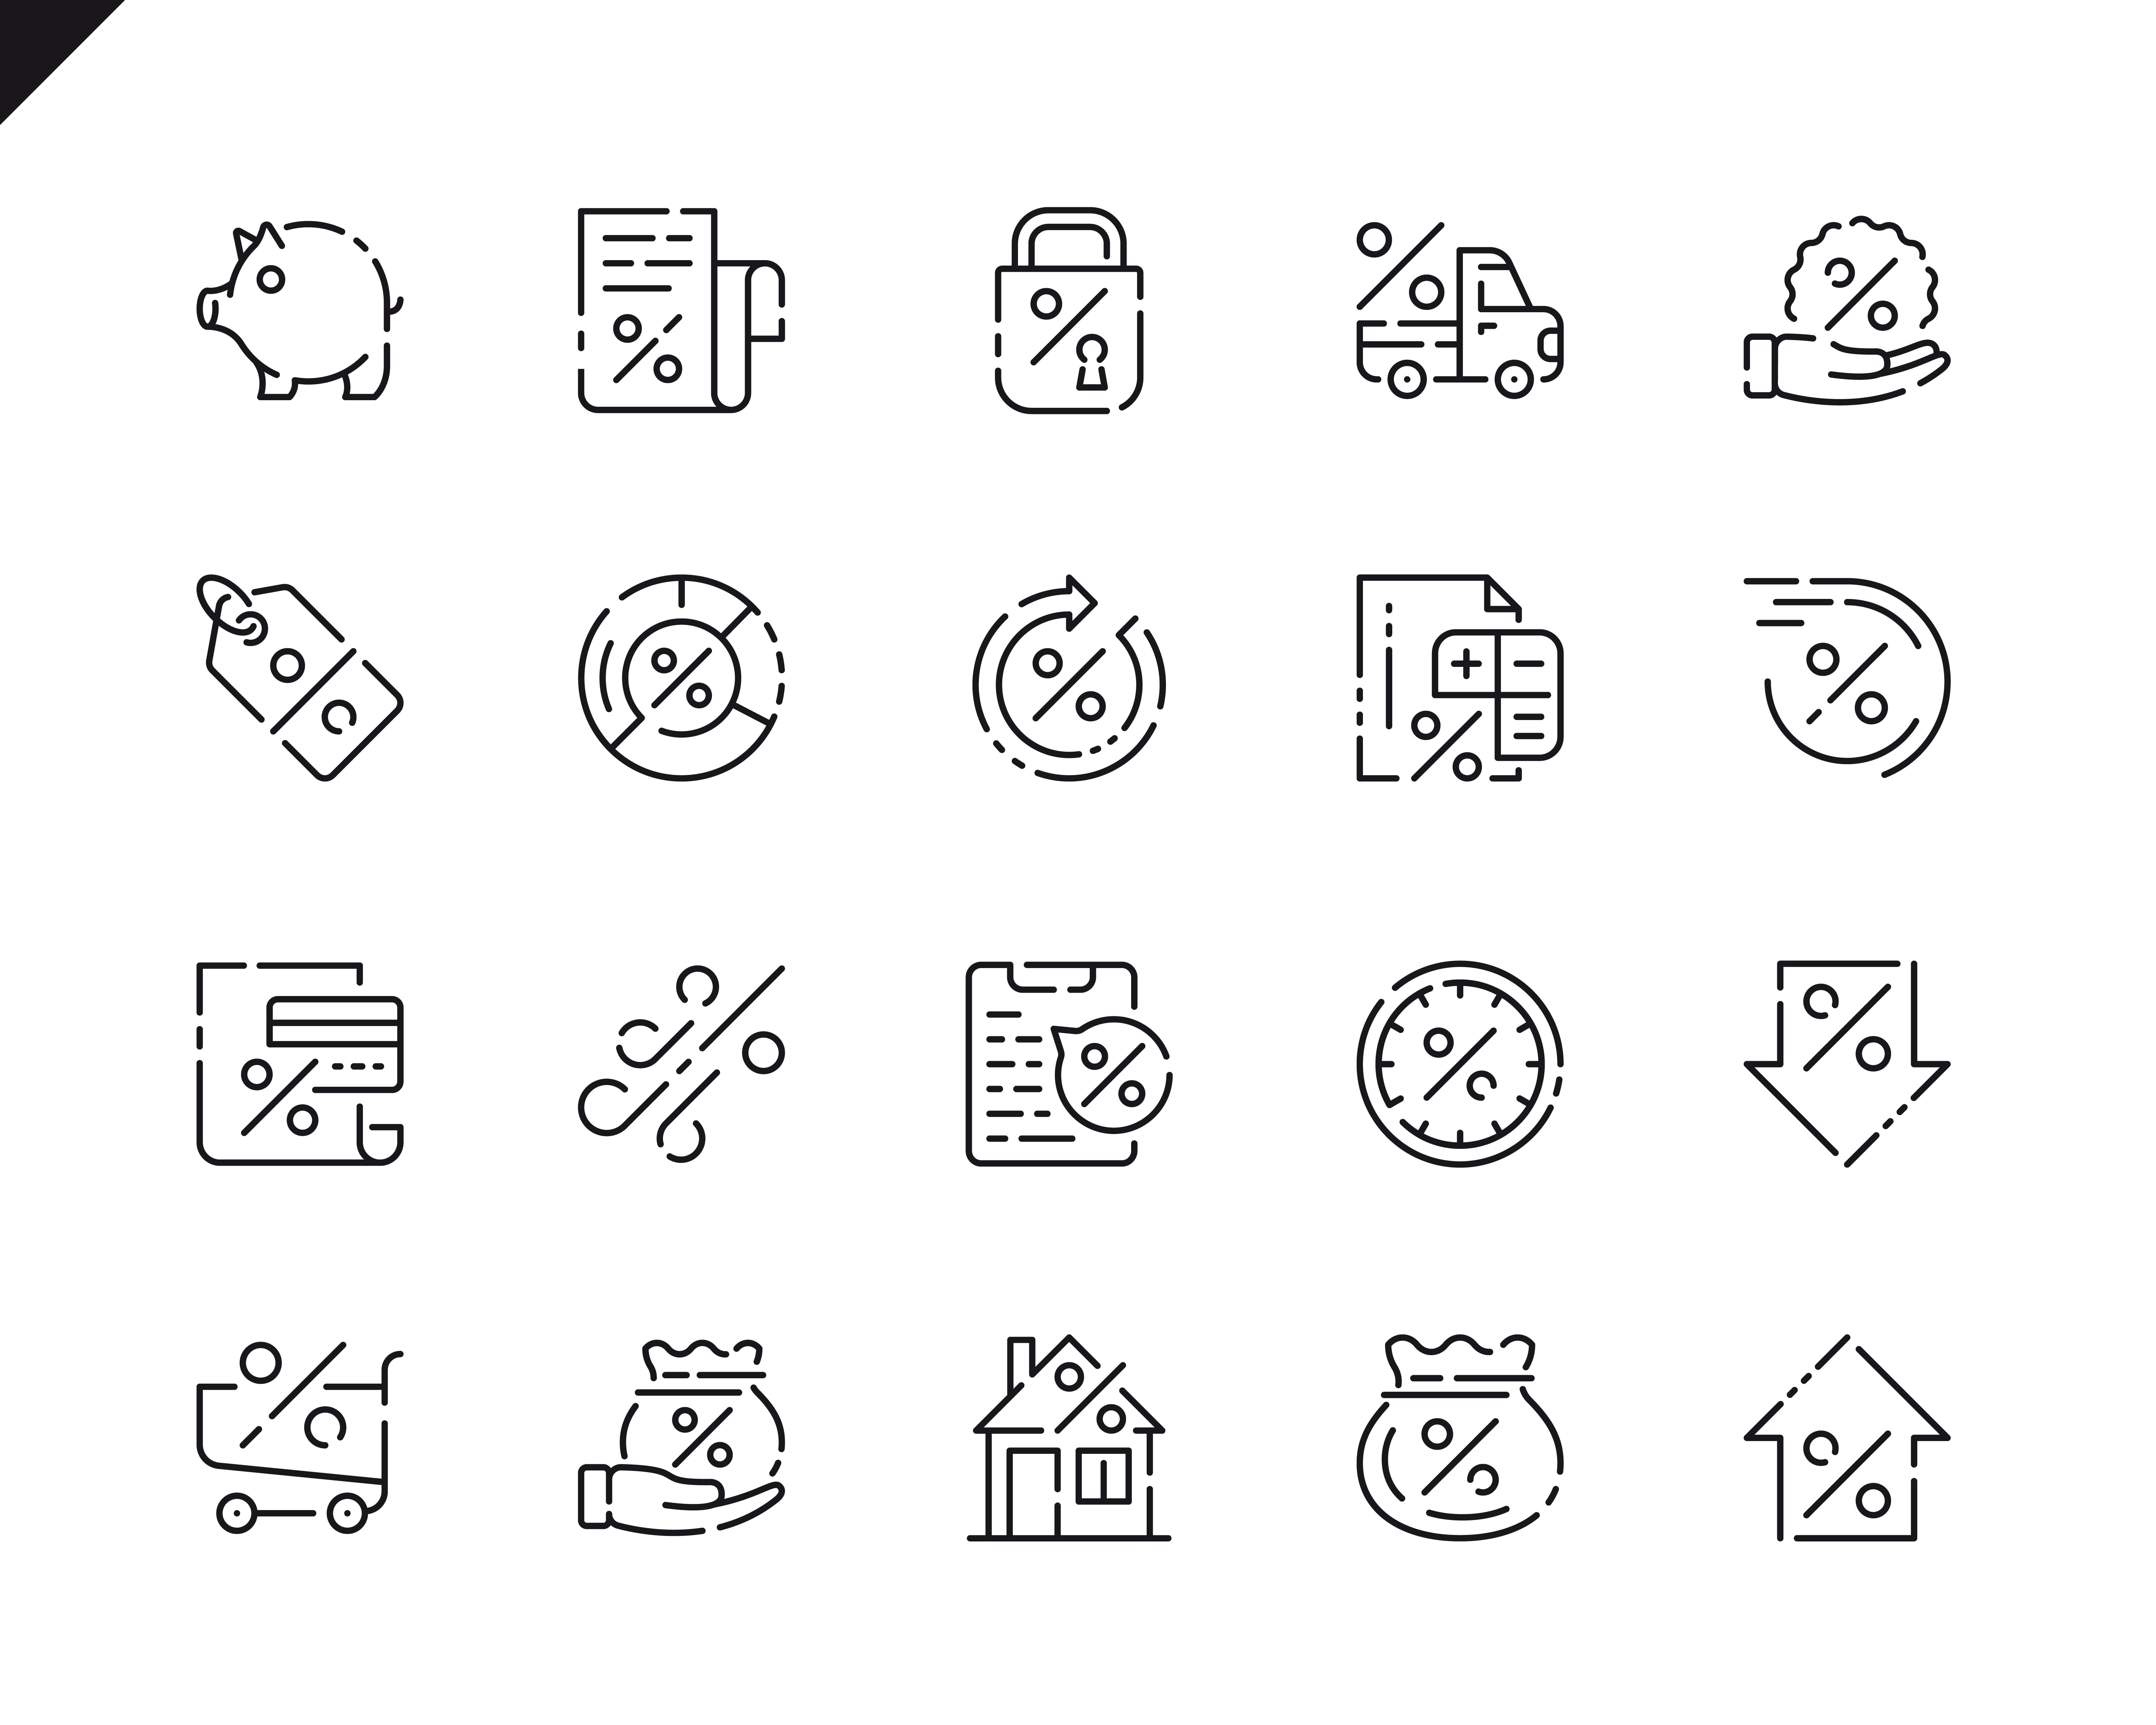 500 Business Line Icons - $22 ONLY - 4 5